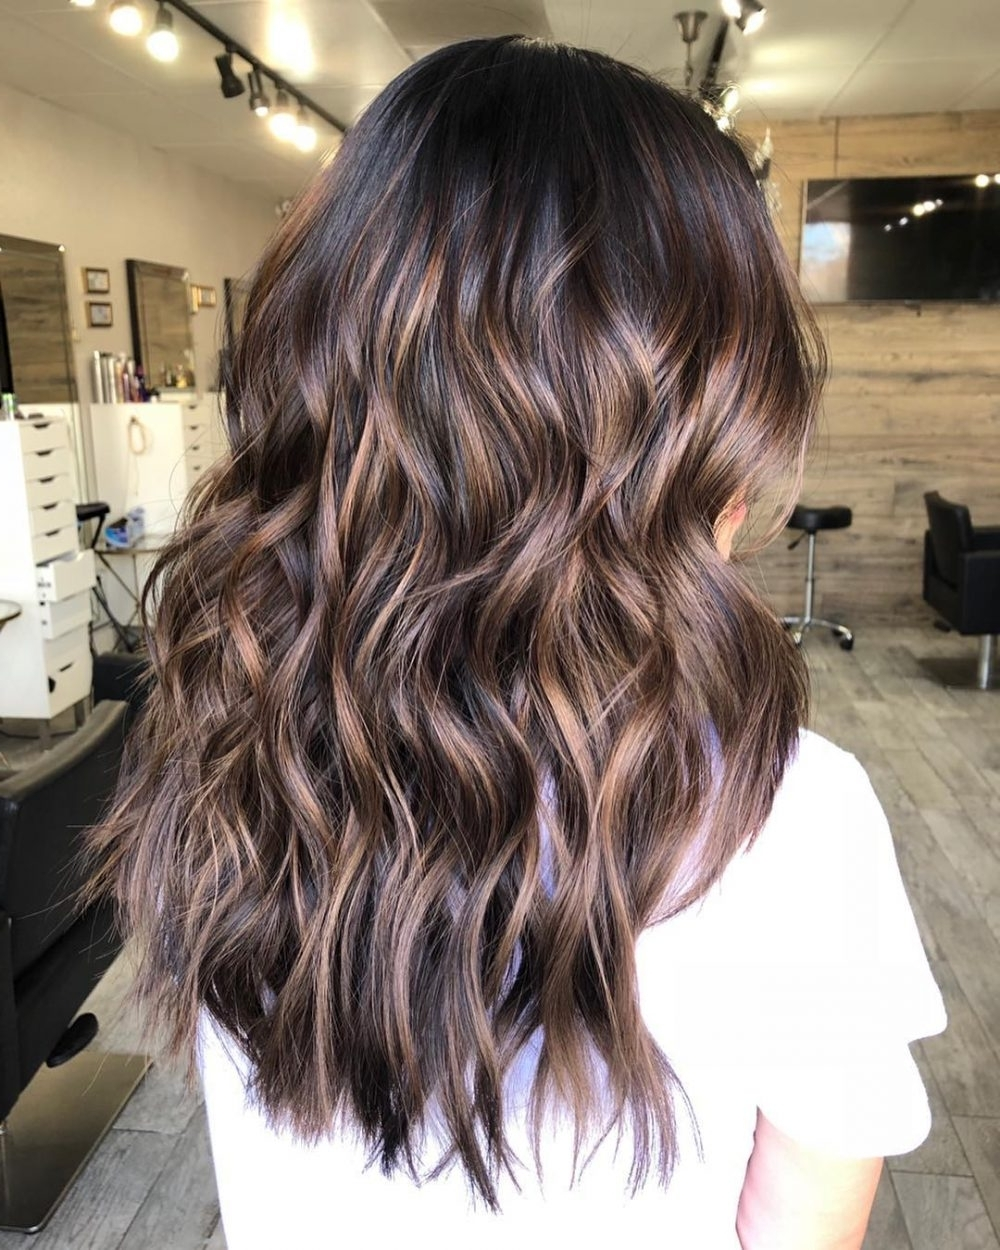 26 Lowlights In 2018 That Will Inspire Your Next Hair Color In Current Twisted Updo With Blonde Highlights (View 2 of 15)